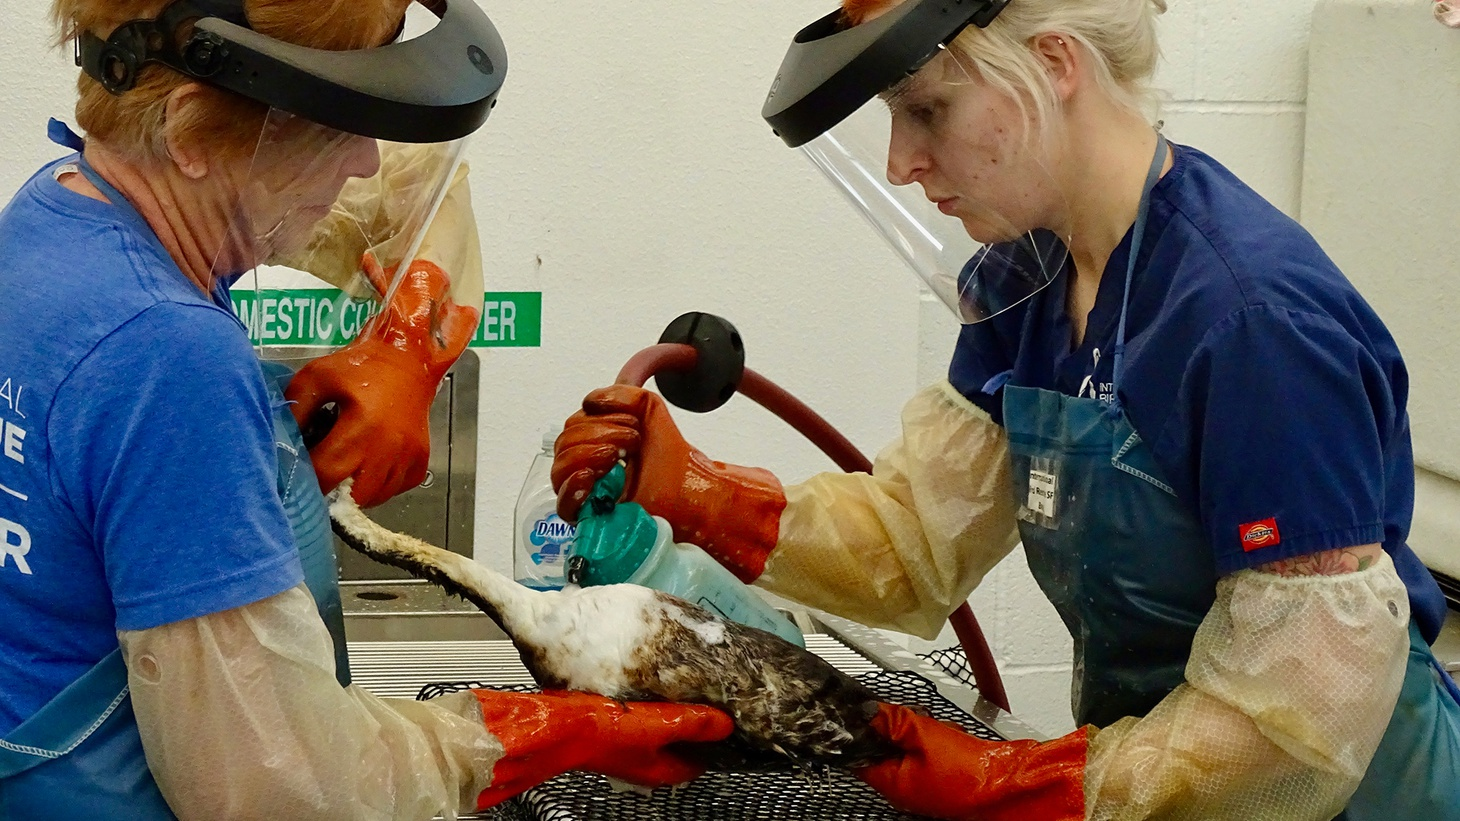 Workers in 2018 remove oil from a wild bird.